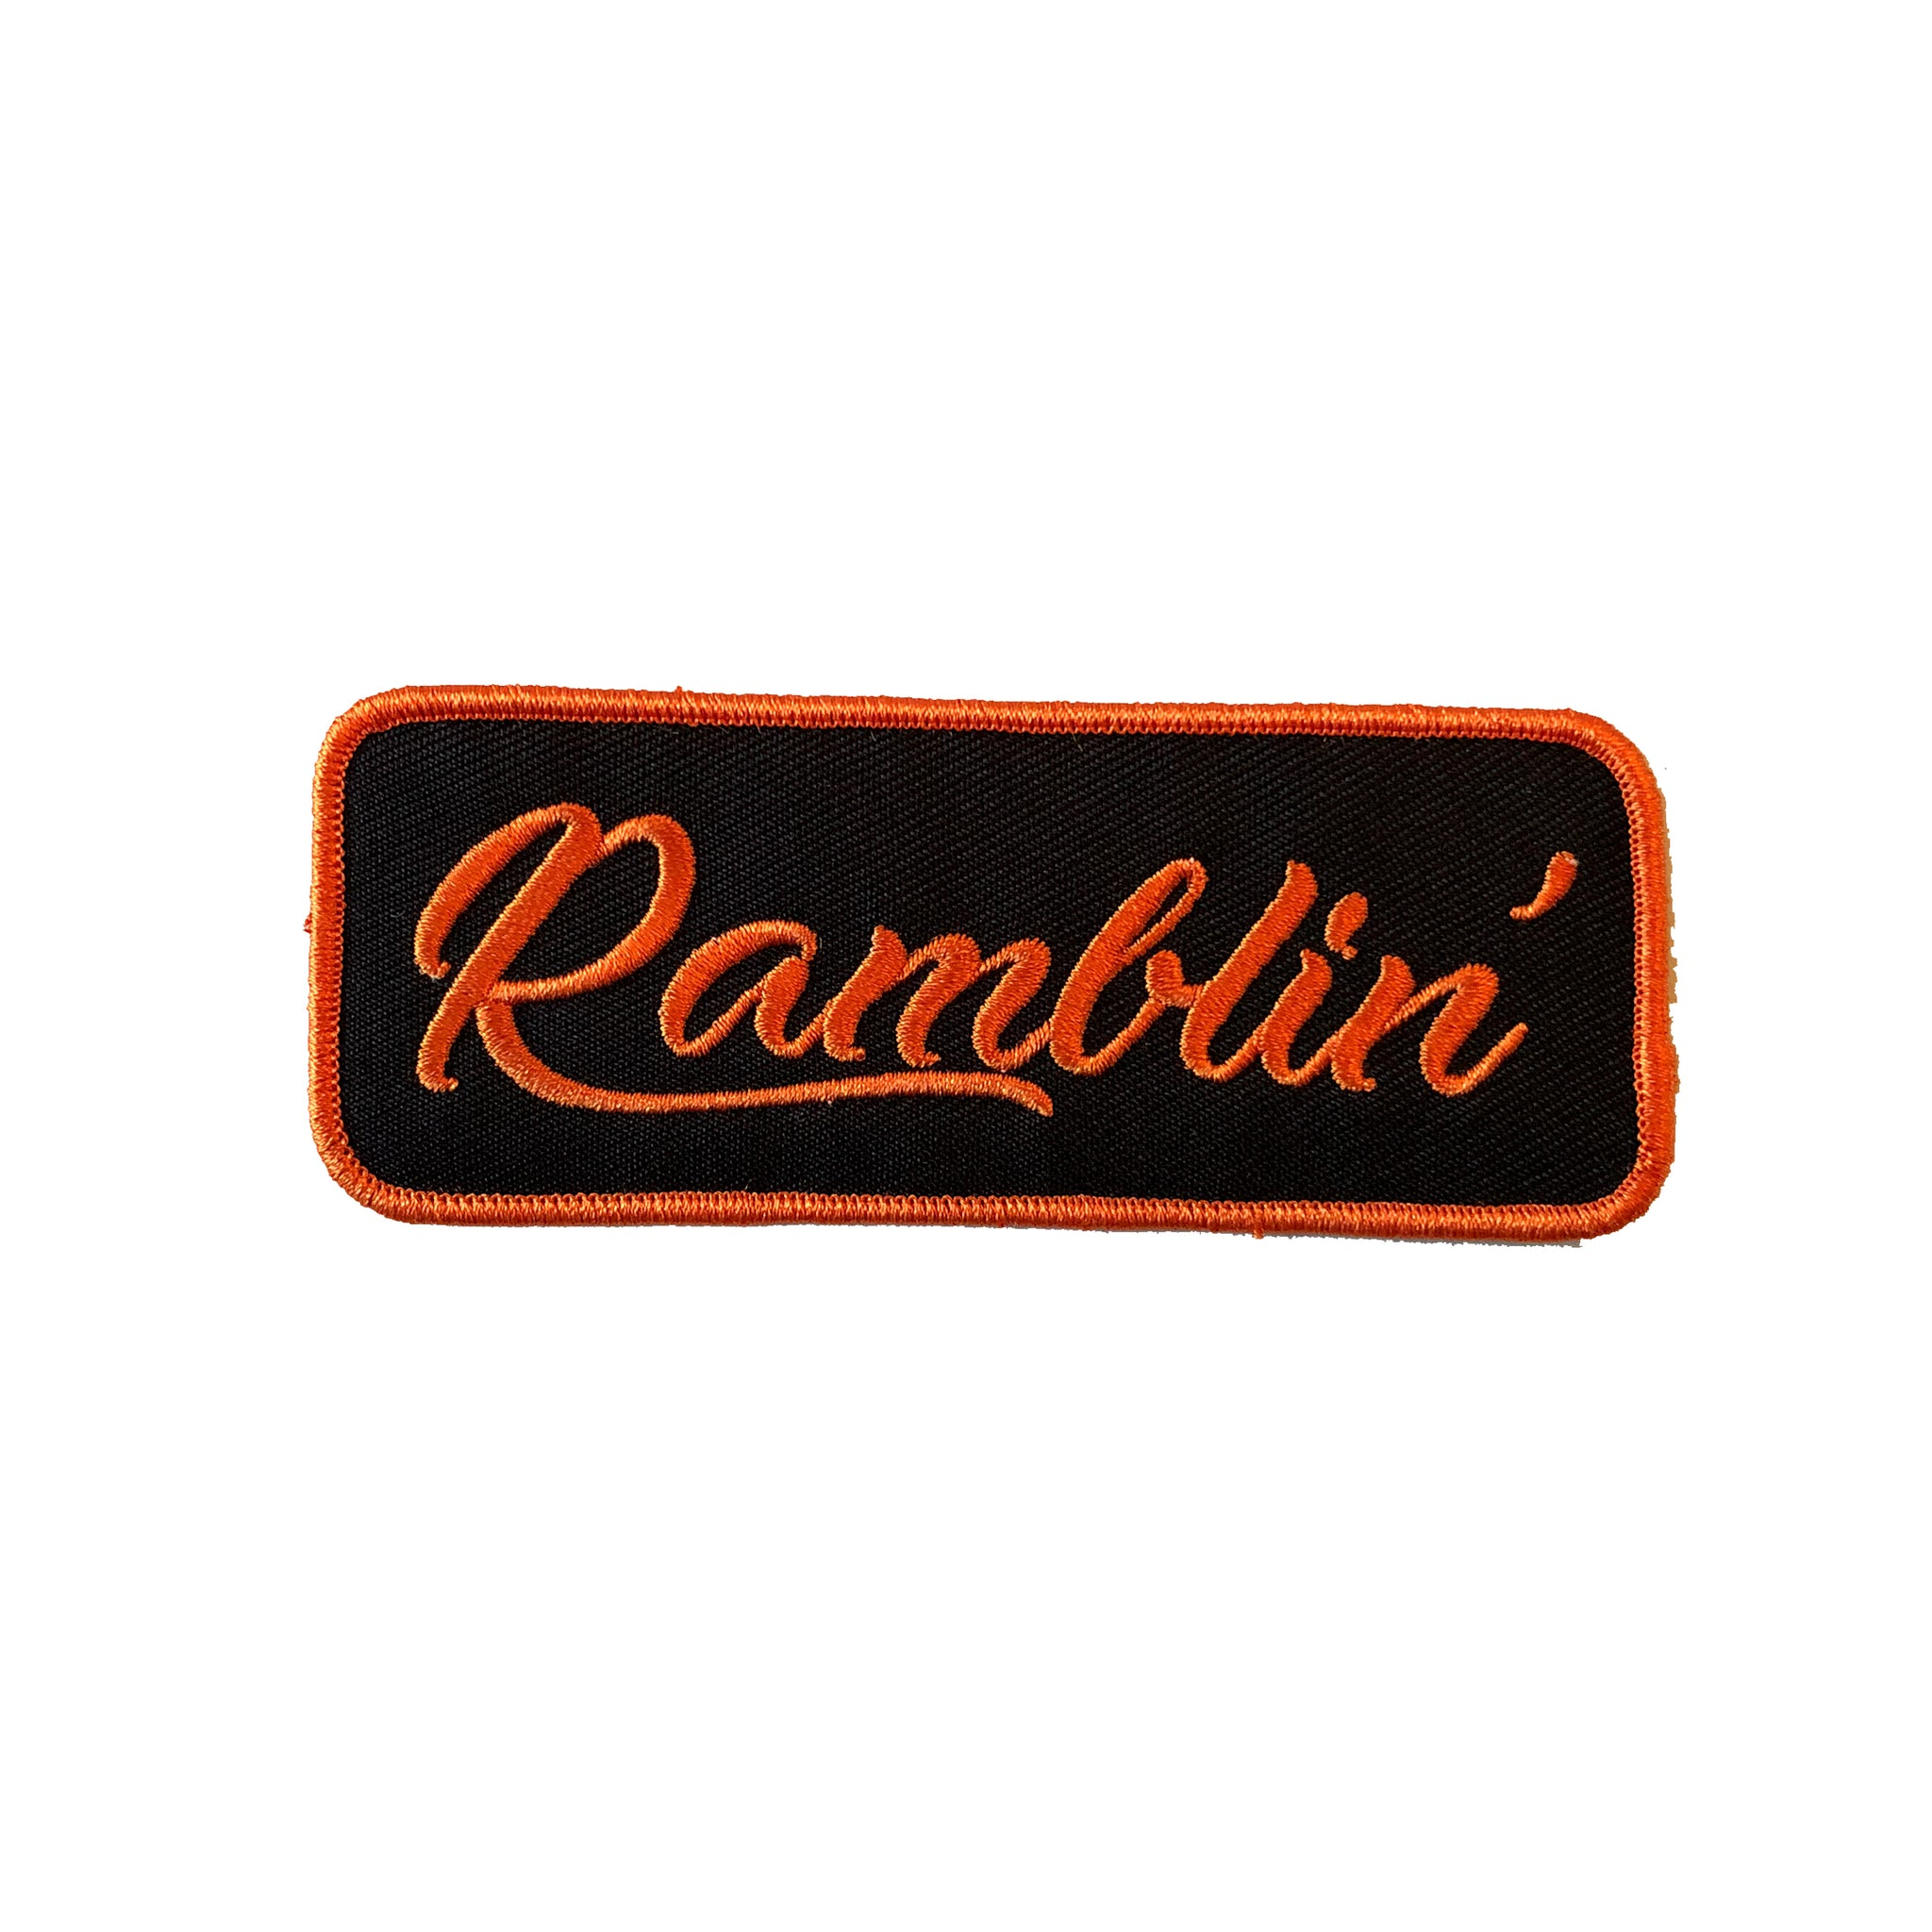 Ramblin' Patch